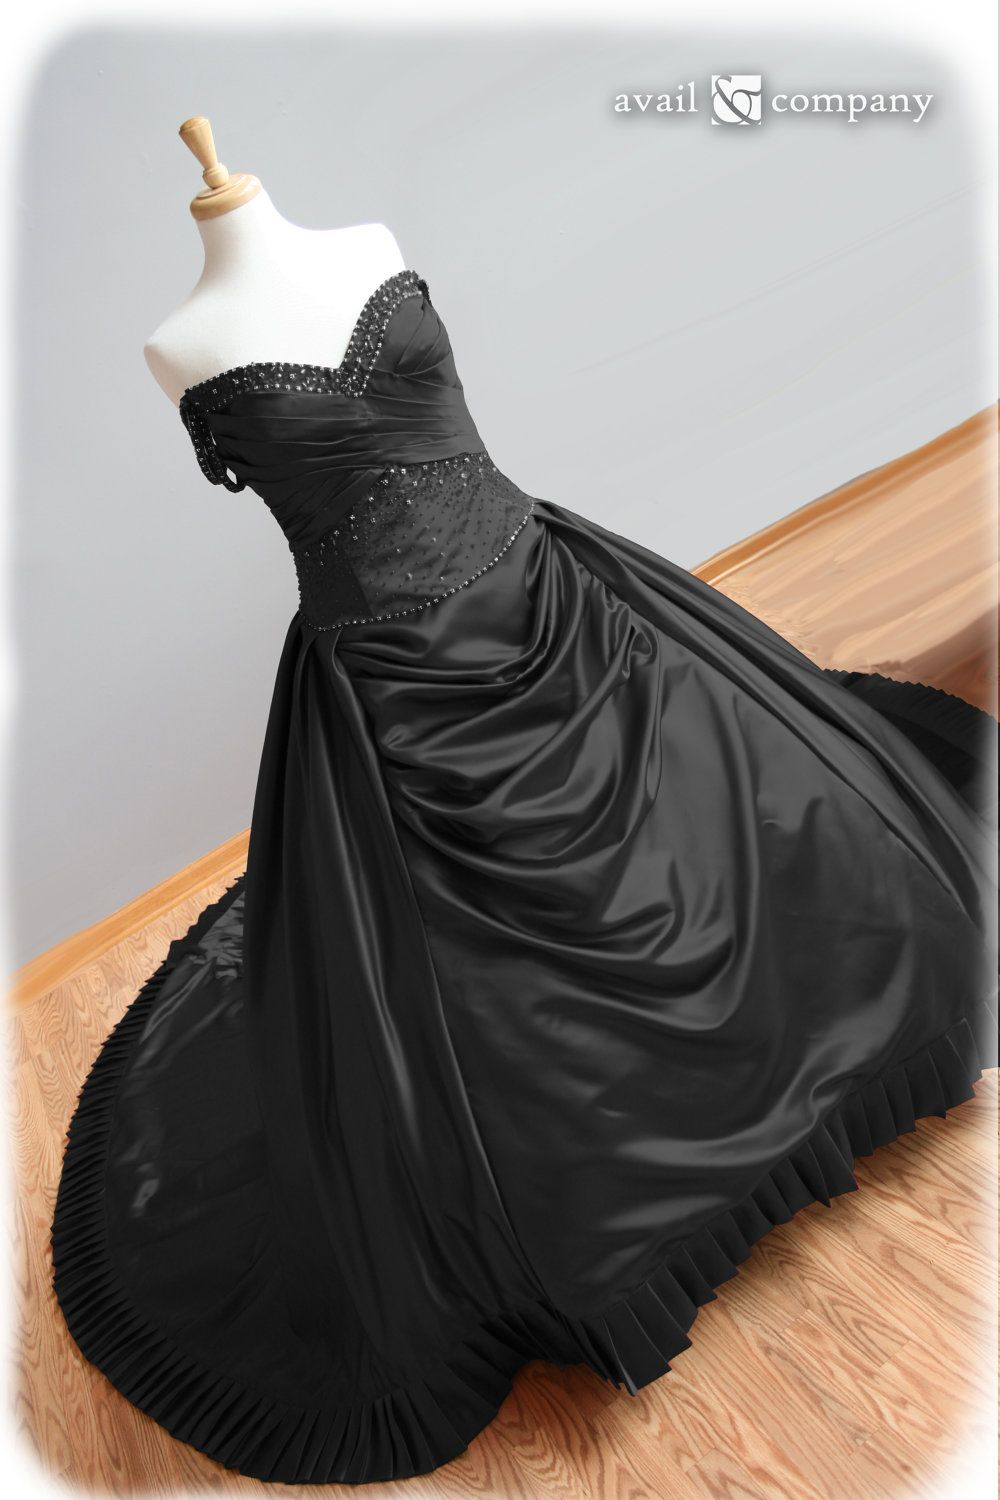 black wedding dress Black Wedding Dress Gothic Wedding Dress Ball Gown Style with Pleats and Crystal Beading Custom Made in your size